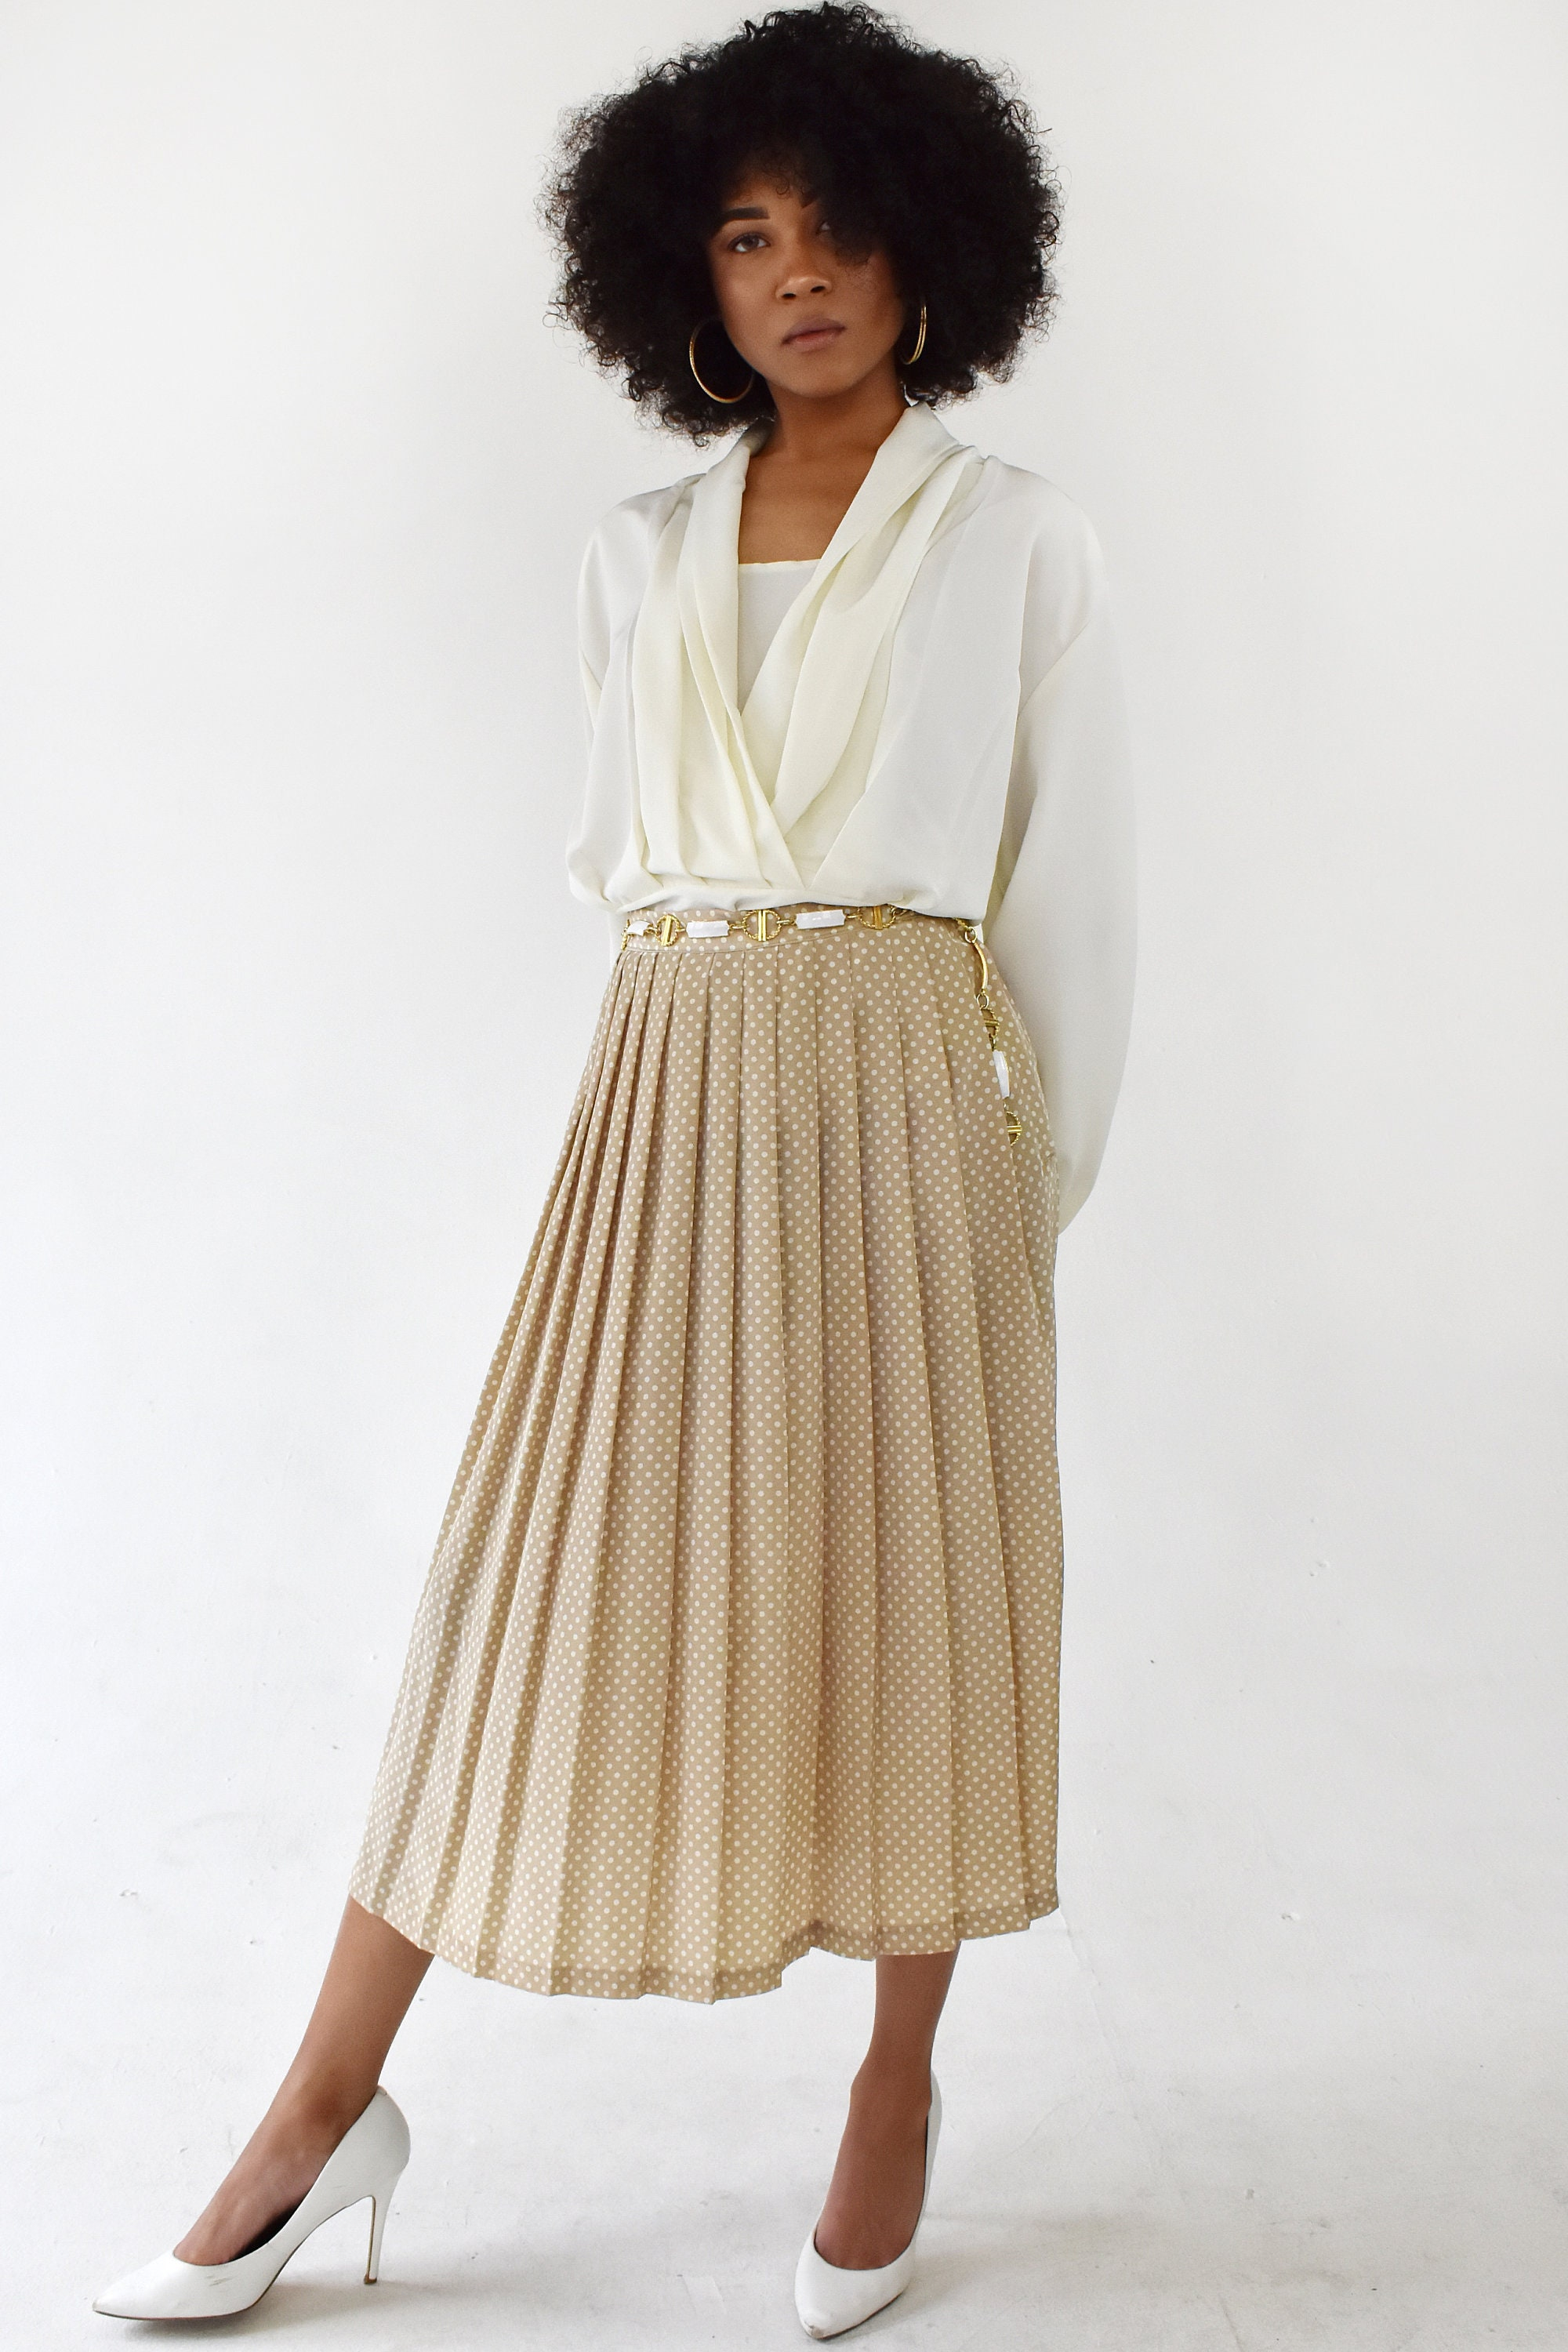 43b07a5549 Vintage High Waisted Pleated Midi Skirt A-Line Beige White | Etsy